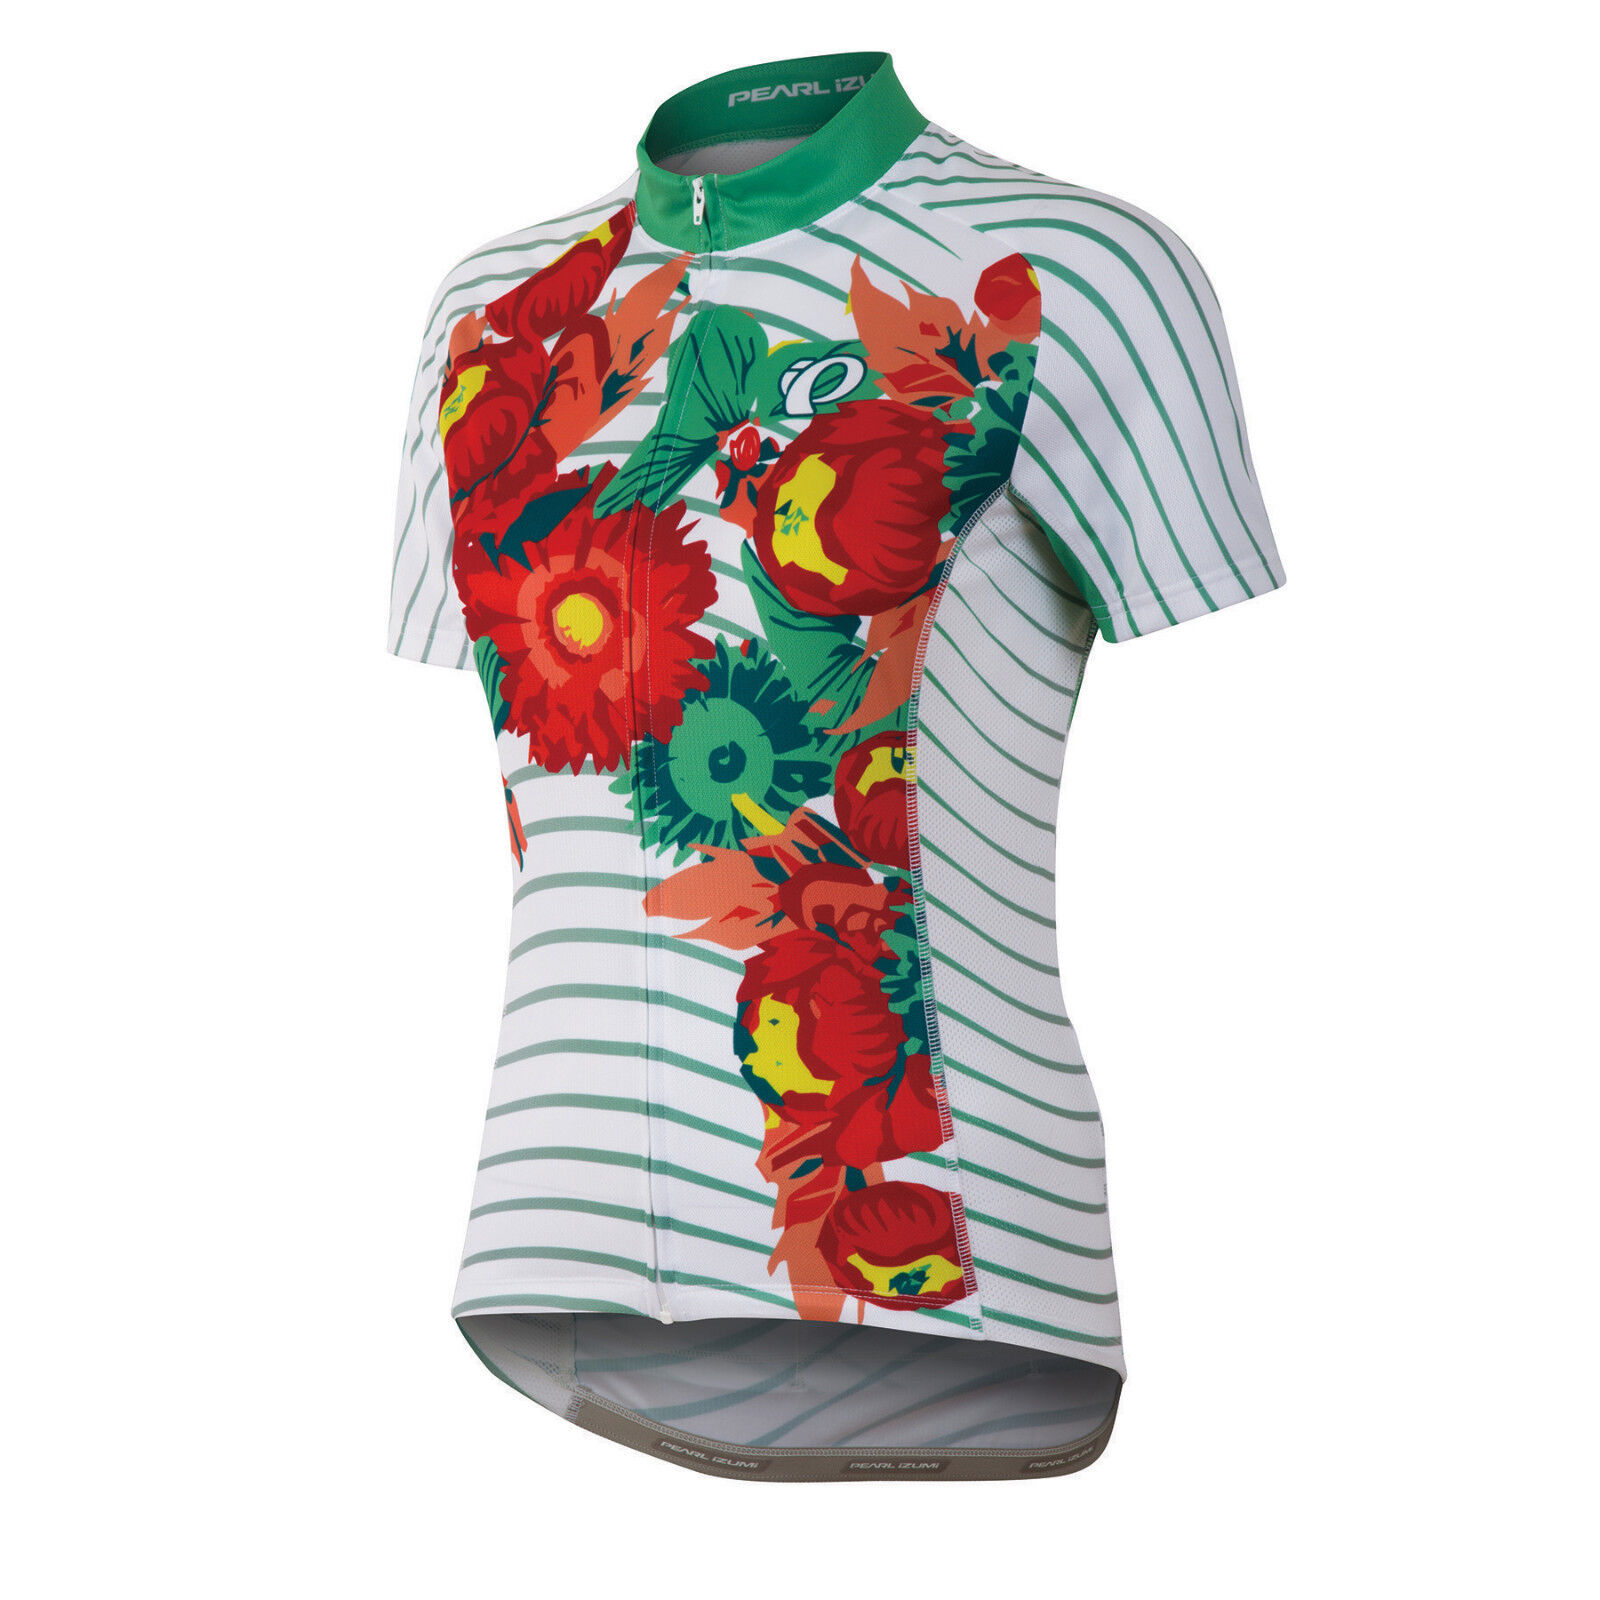 Pearl Izumi Womens Elite LTD Cycling Jersey - White with Floral Print - L